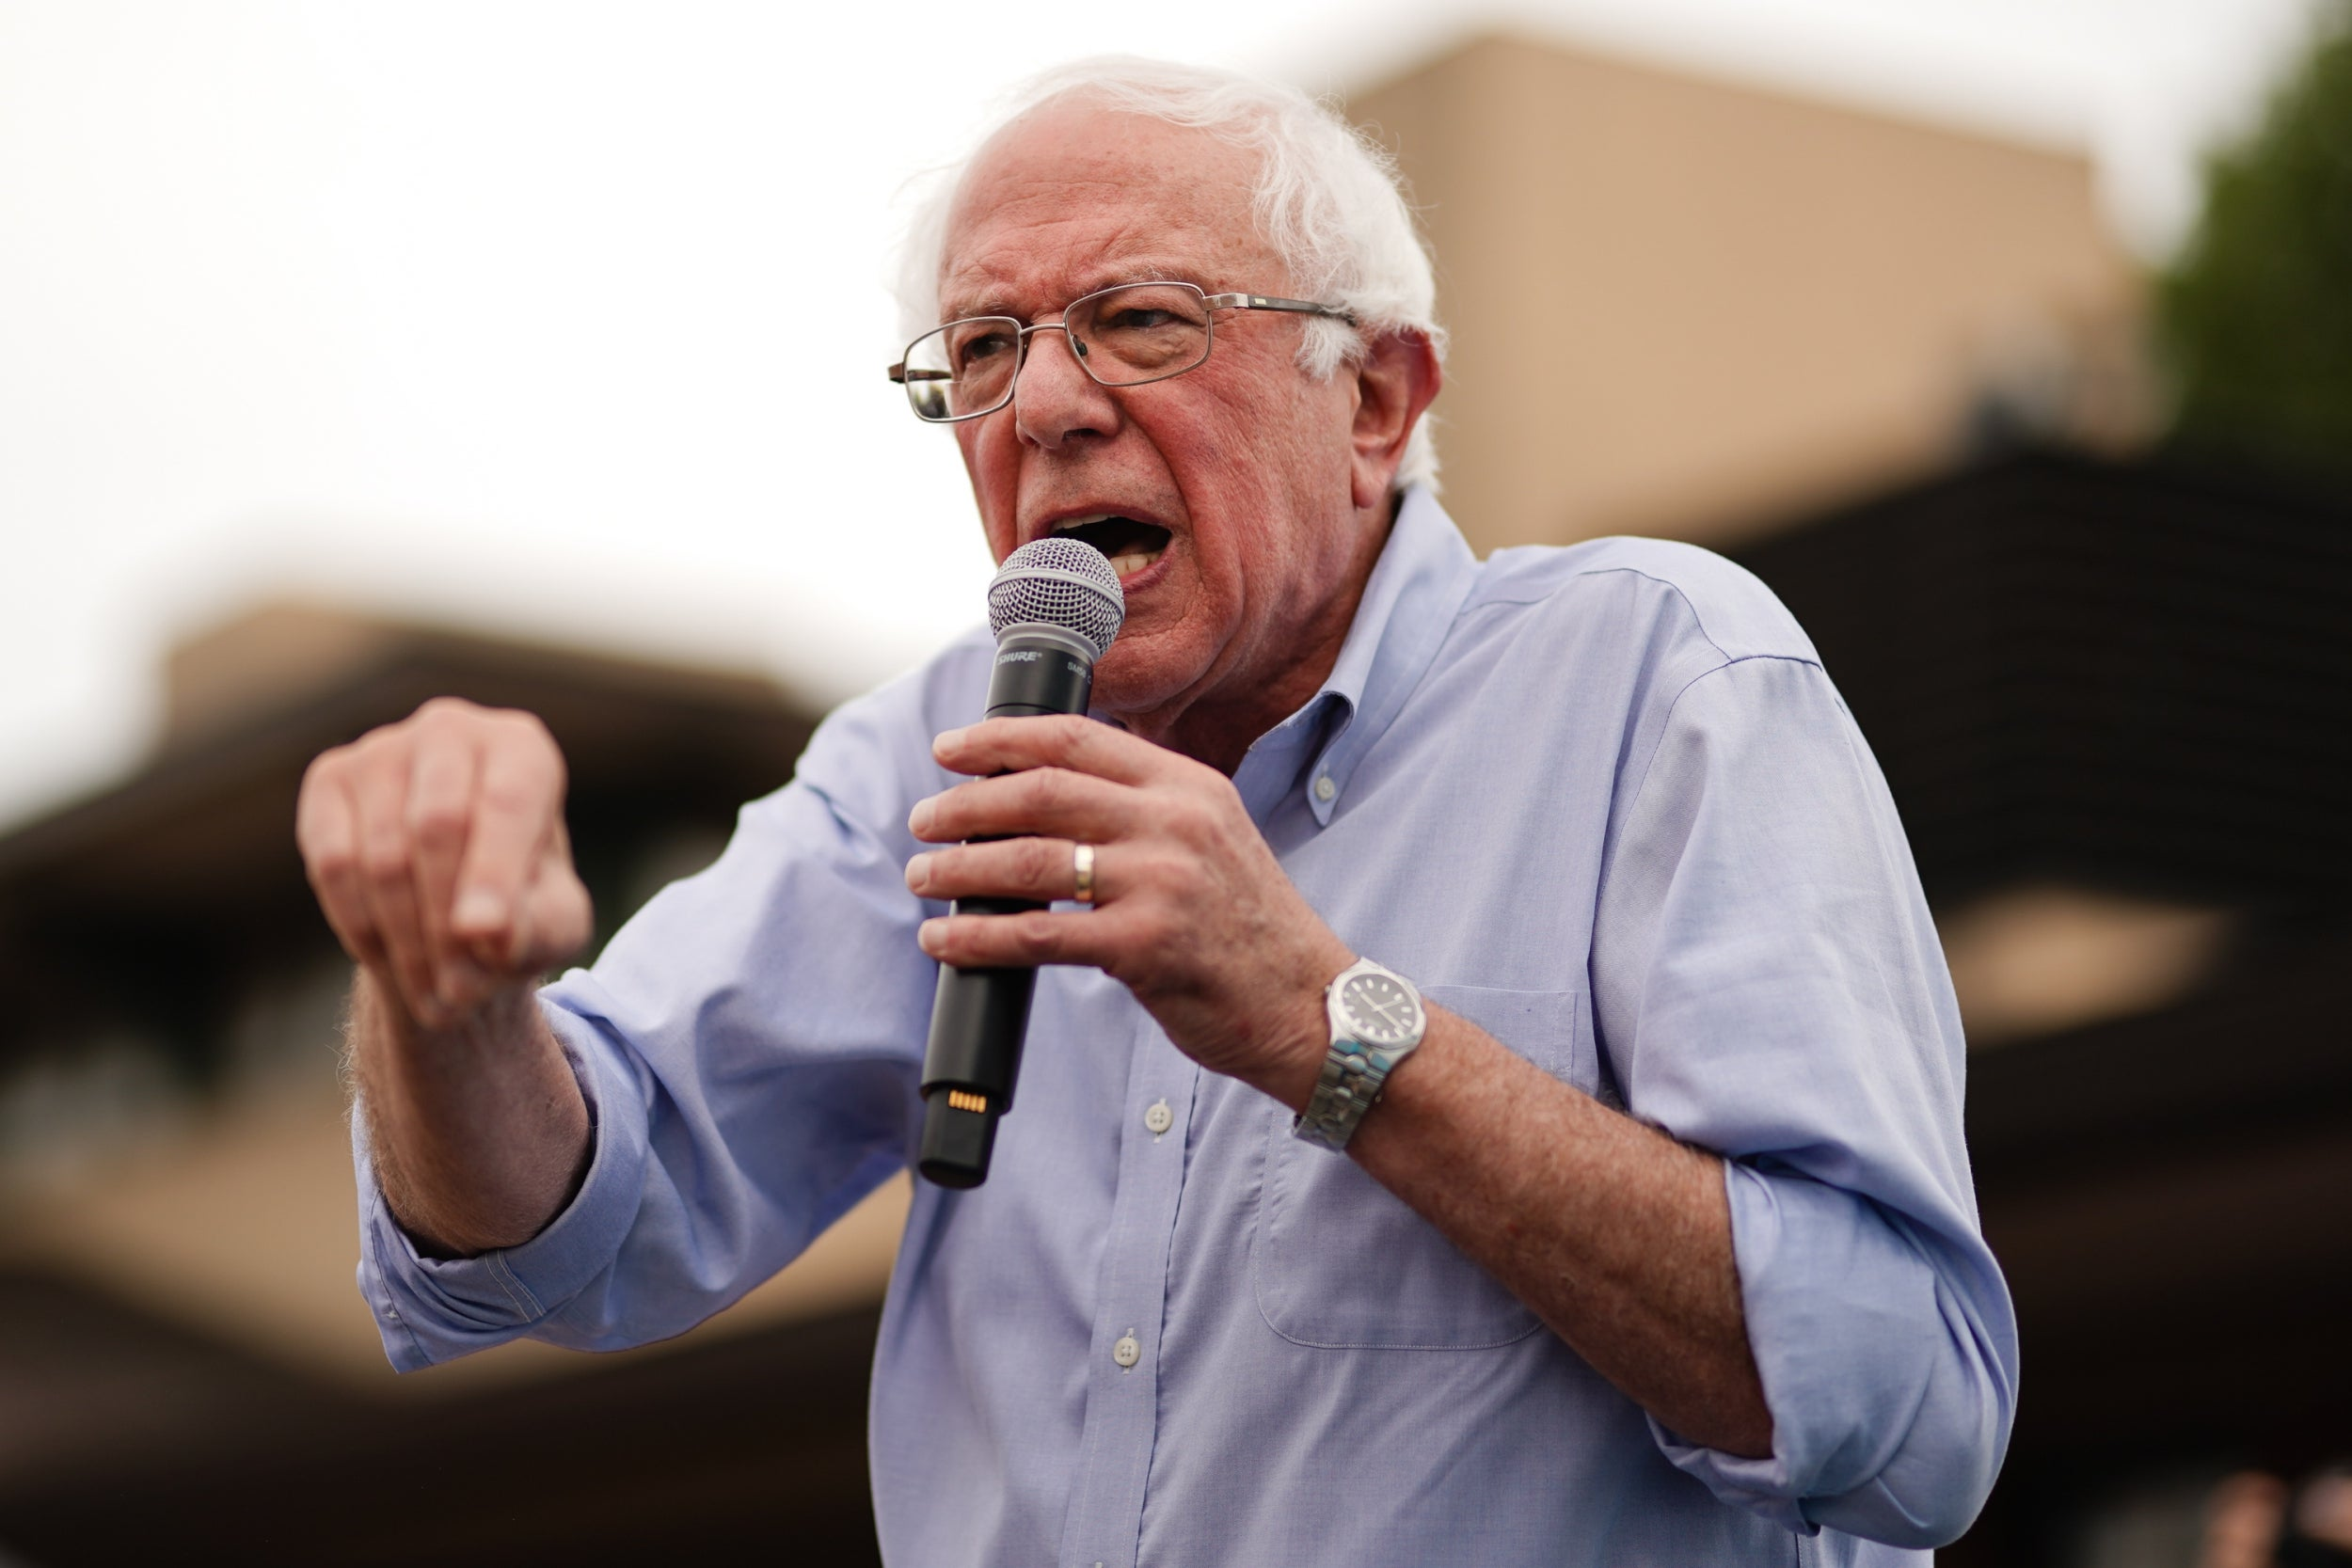 I need you to stop tone-policing Bernie Sanders